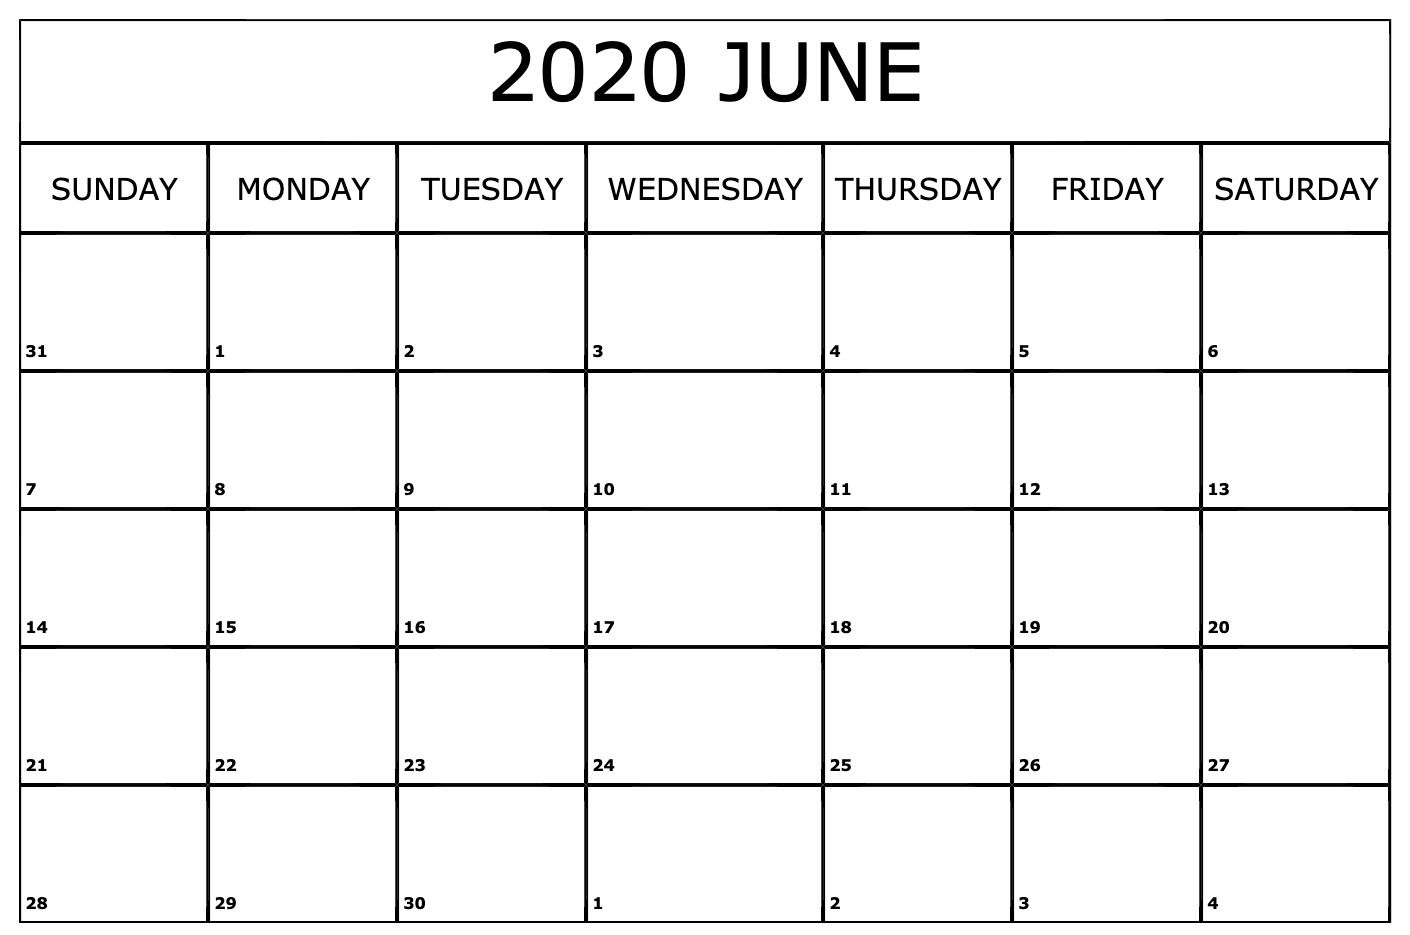 June 2020 US Calendar Holidays